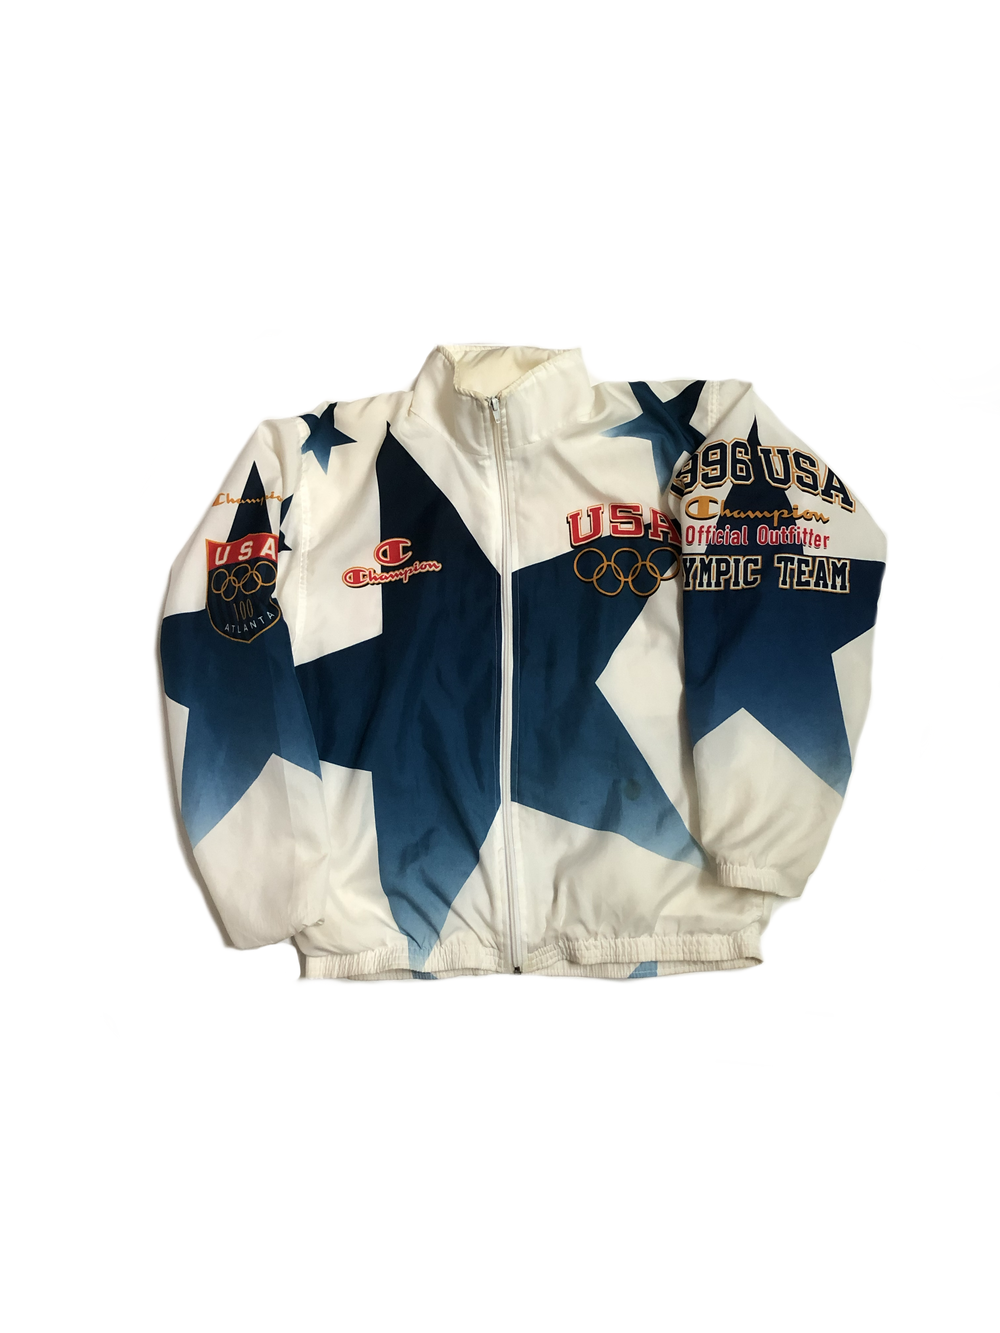 Image of Champion Atlanta 1996 Olympic Windbreaker